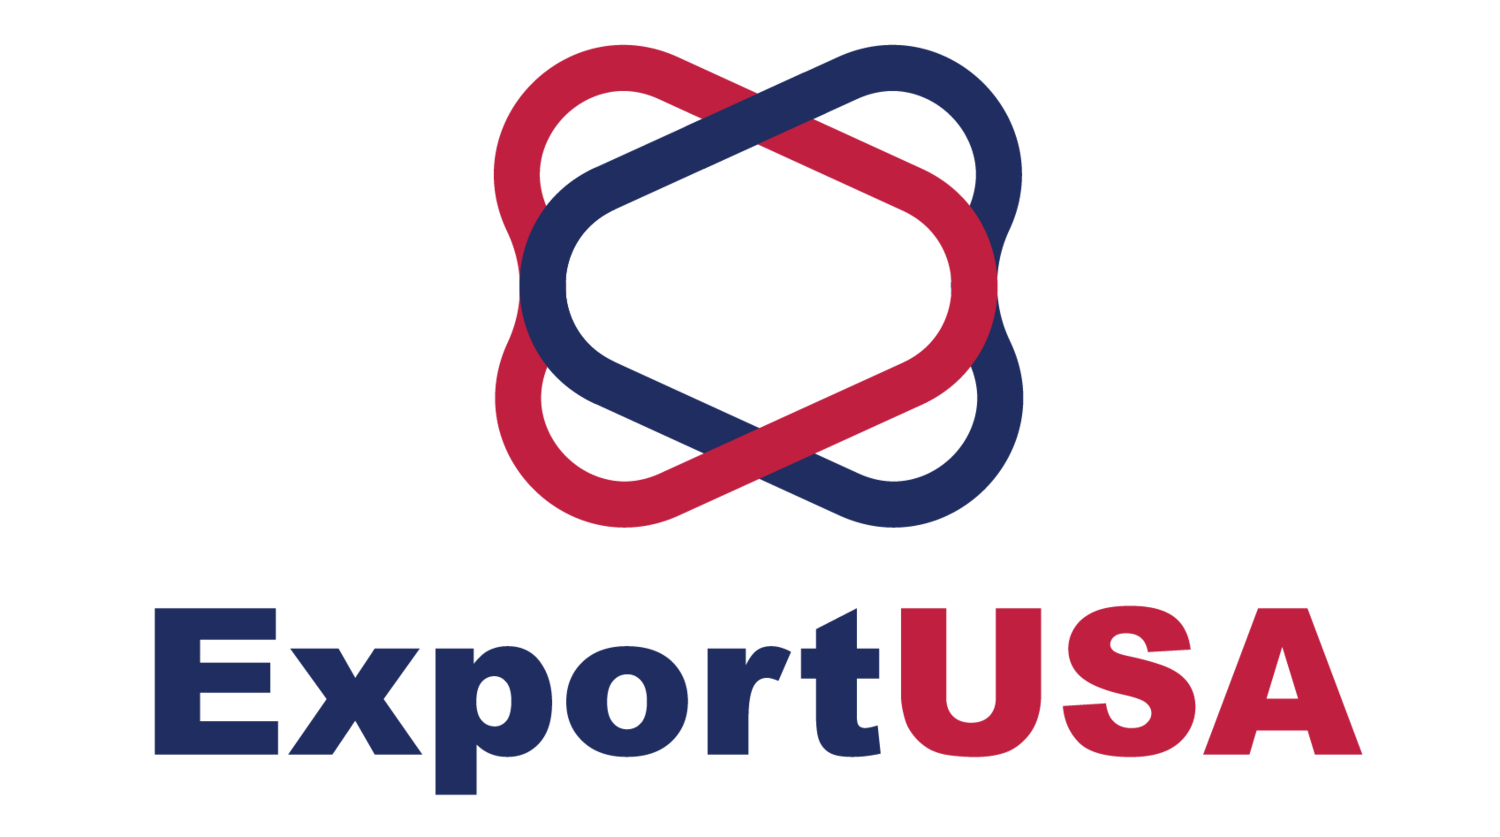 ExportUSA SPRL - Foster the trade between the EU and the US